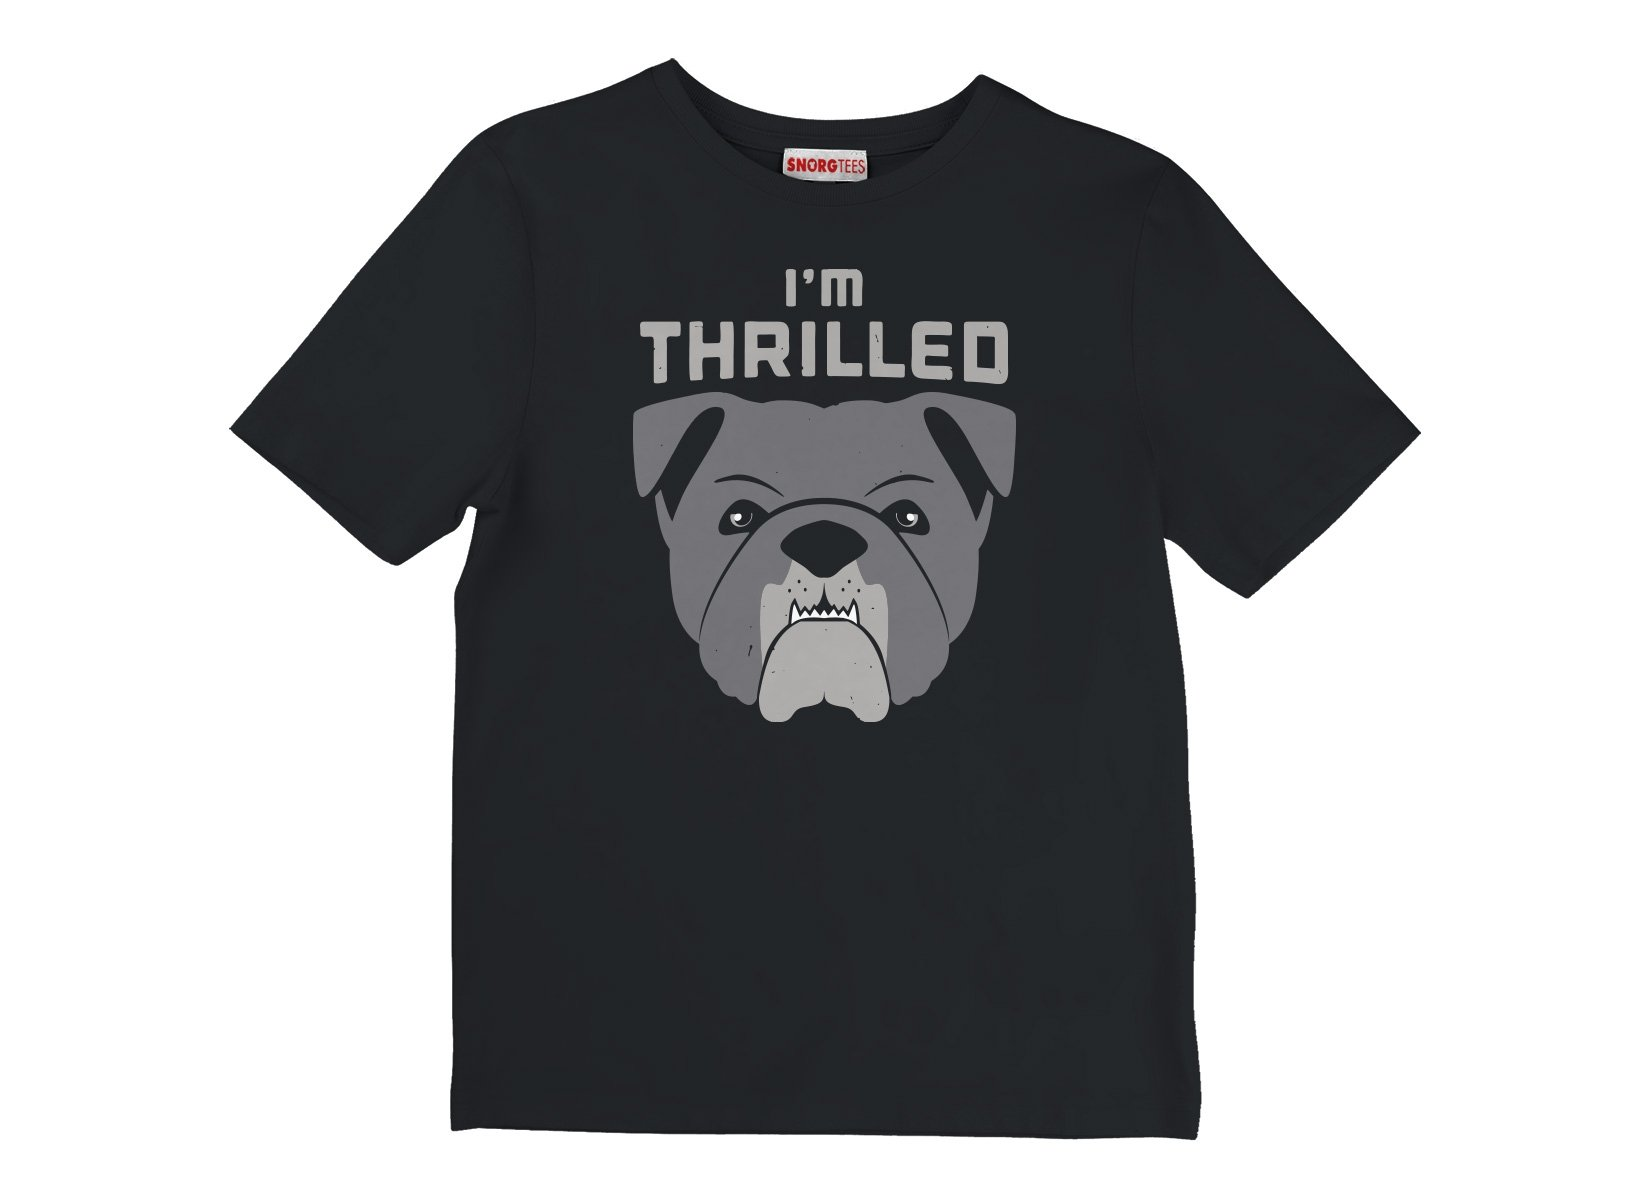 I'm Thrilled on Kids T-Shirt